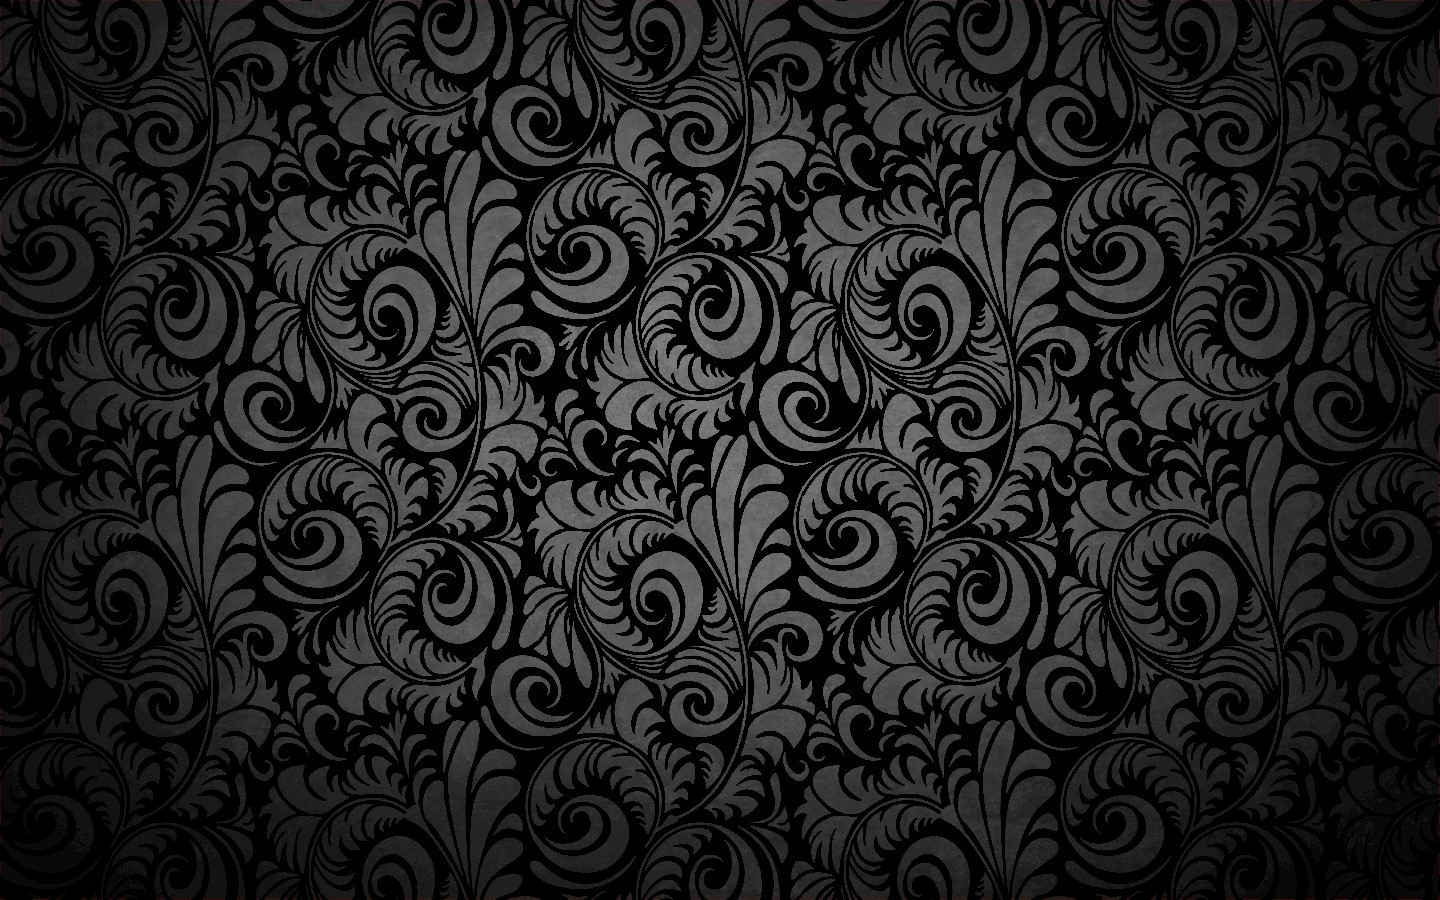 Abstract Floral Pattern For Desktop